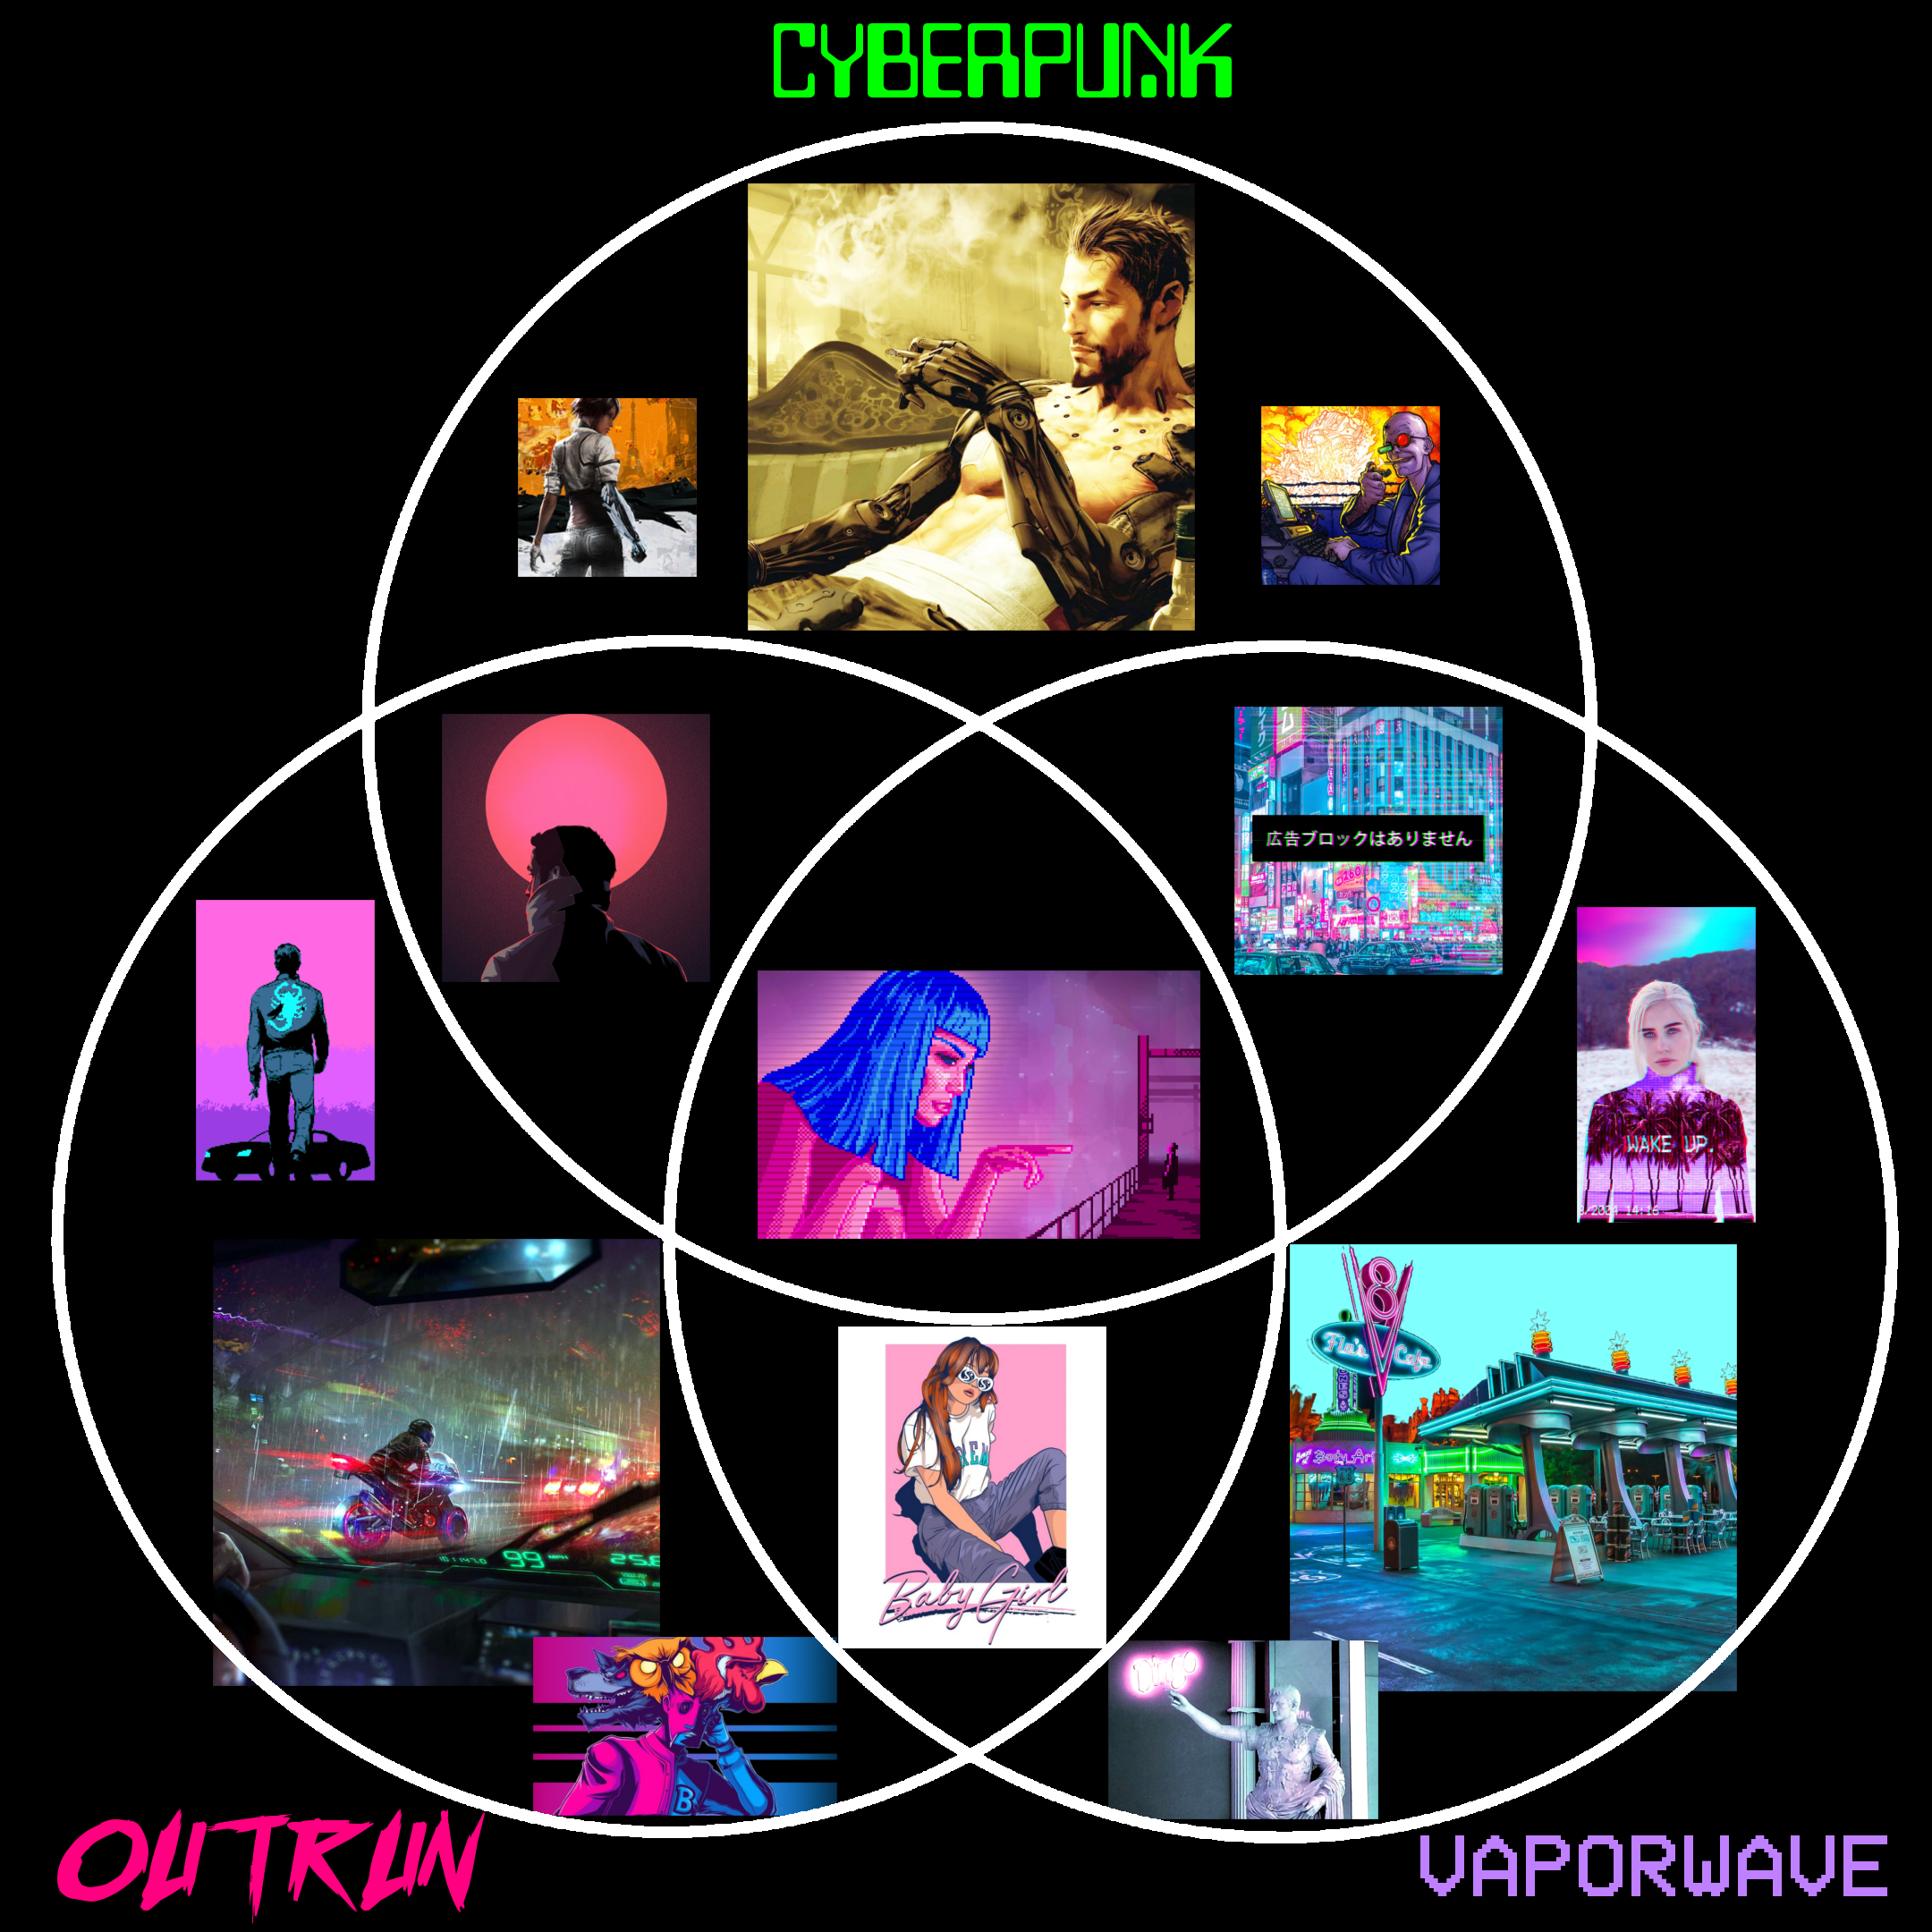 hight resolution of a venn diagram comparing cyberpunk outrun and vaporwave styles and themes